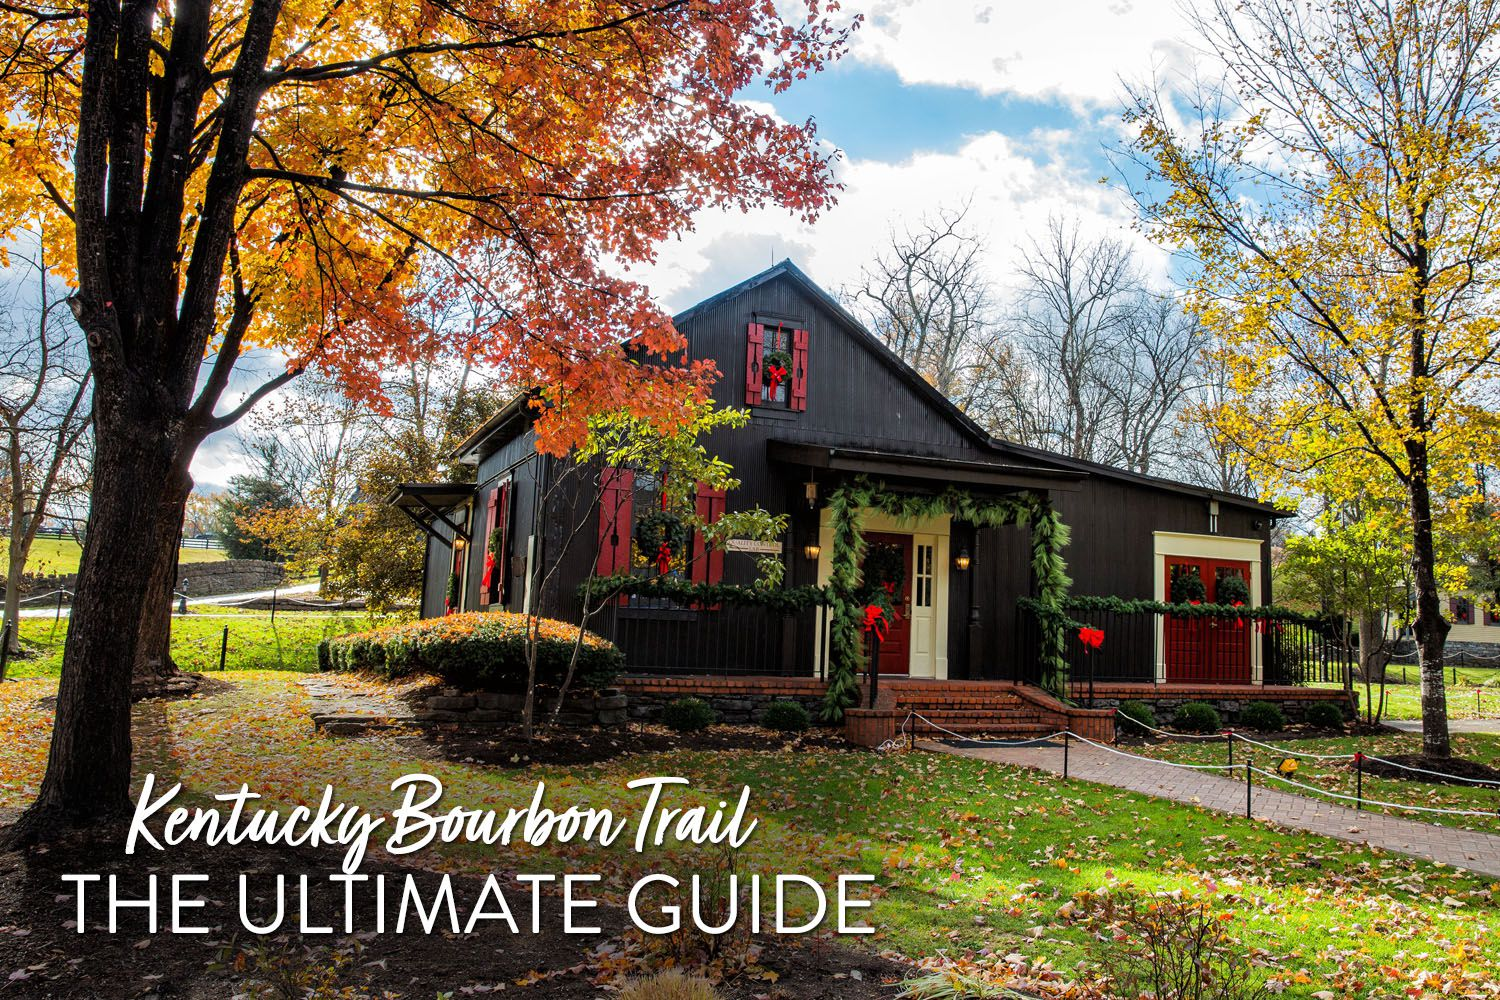 Kentucky Bourbon Trail Guide